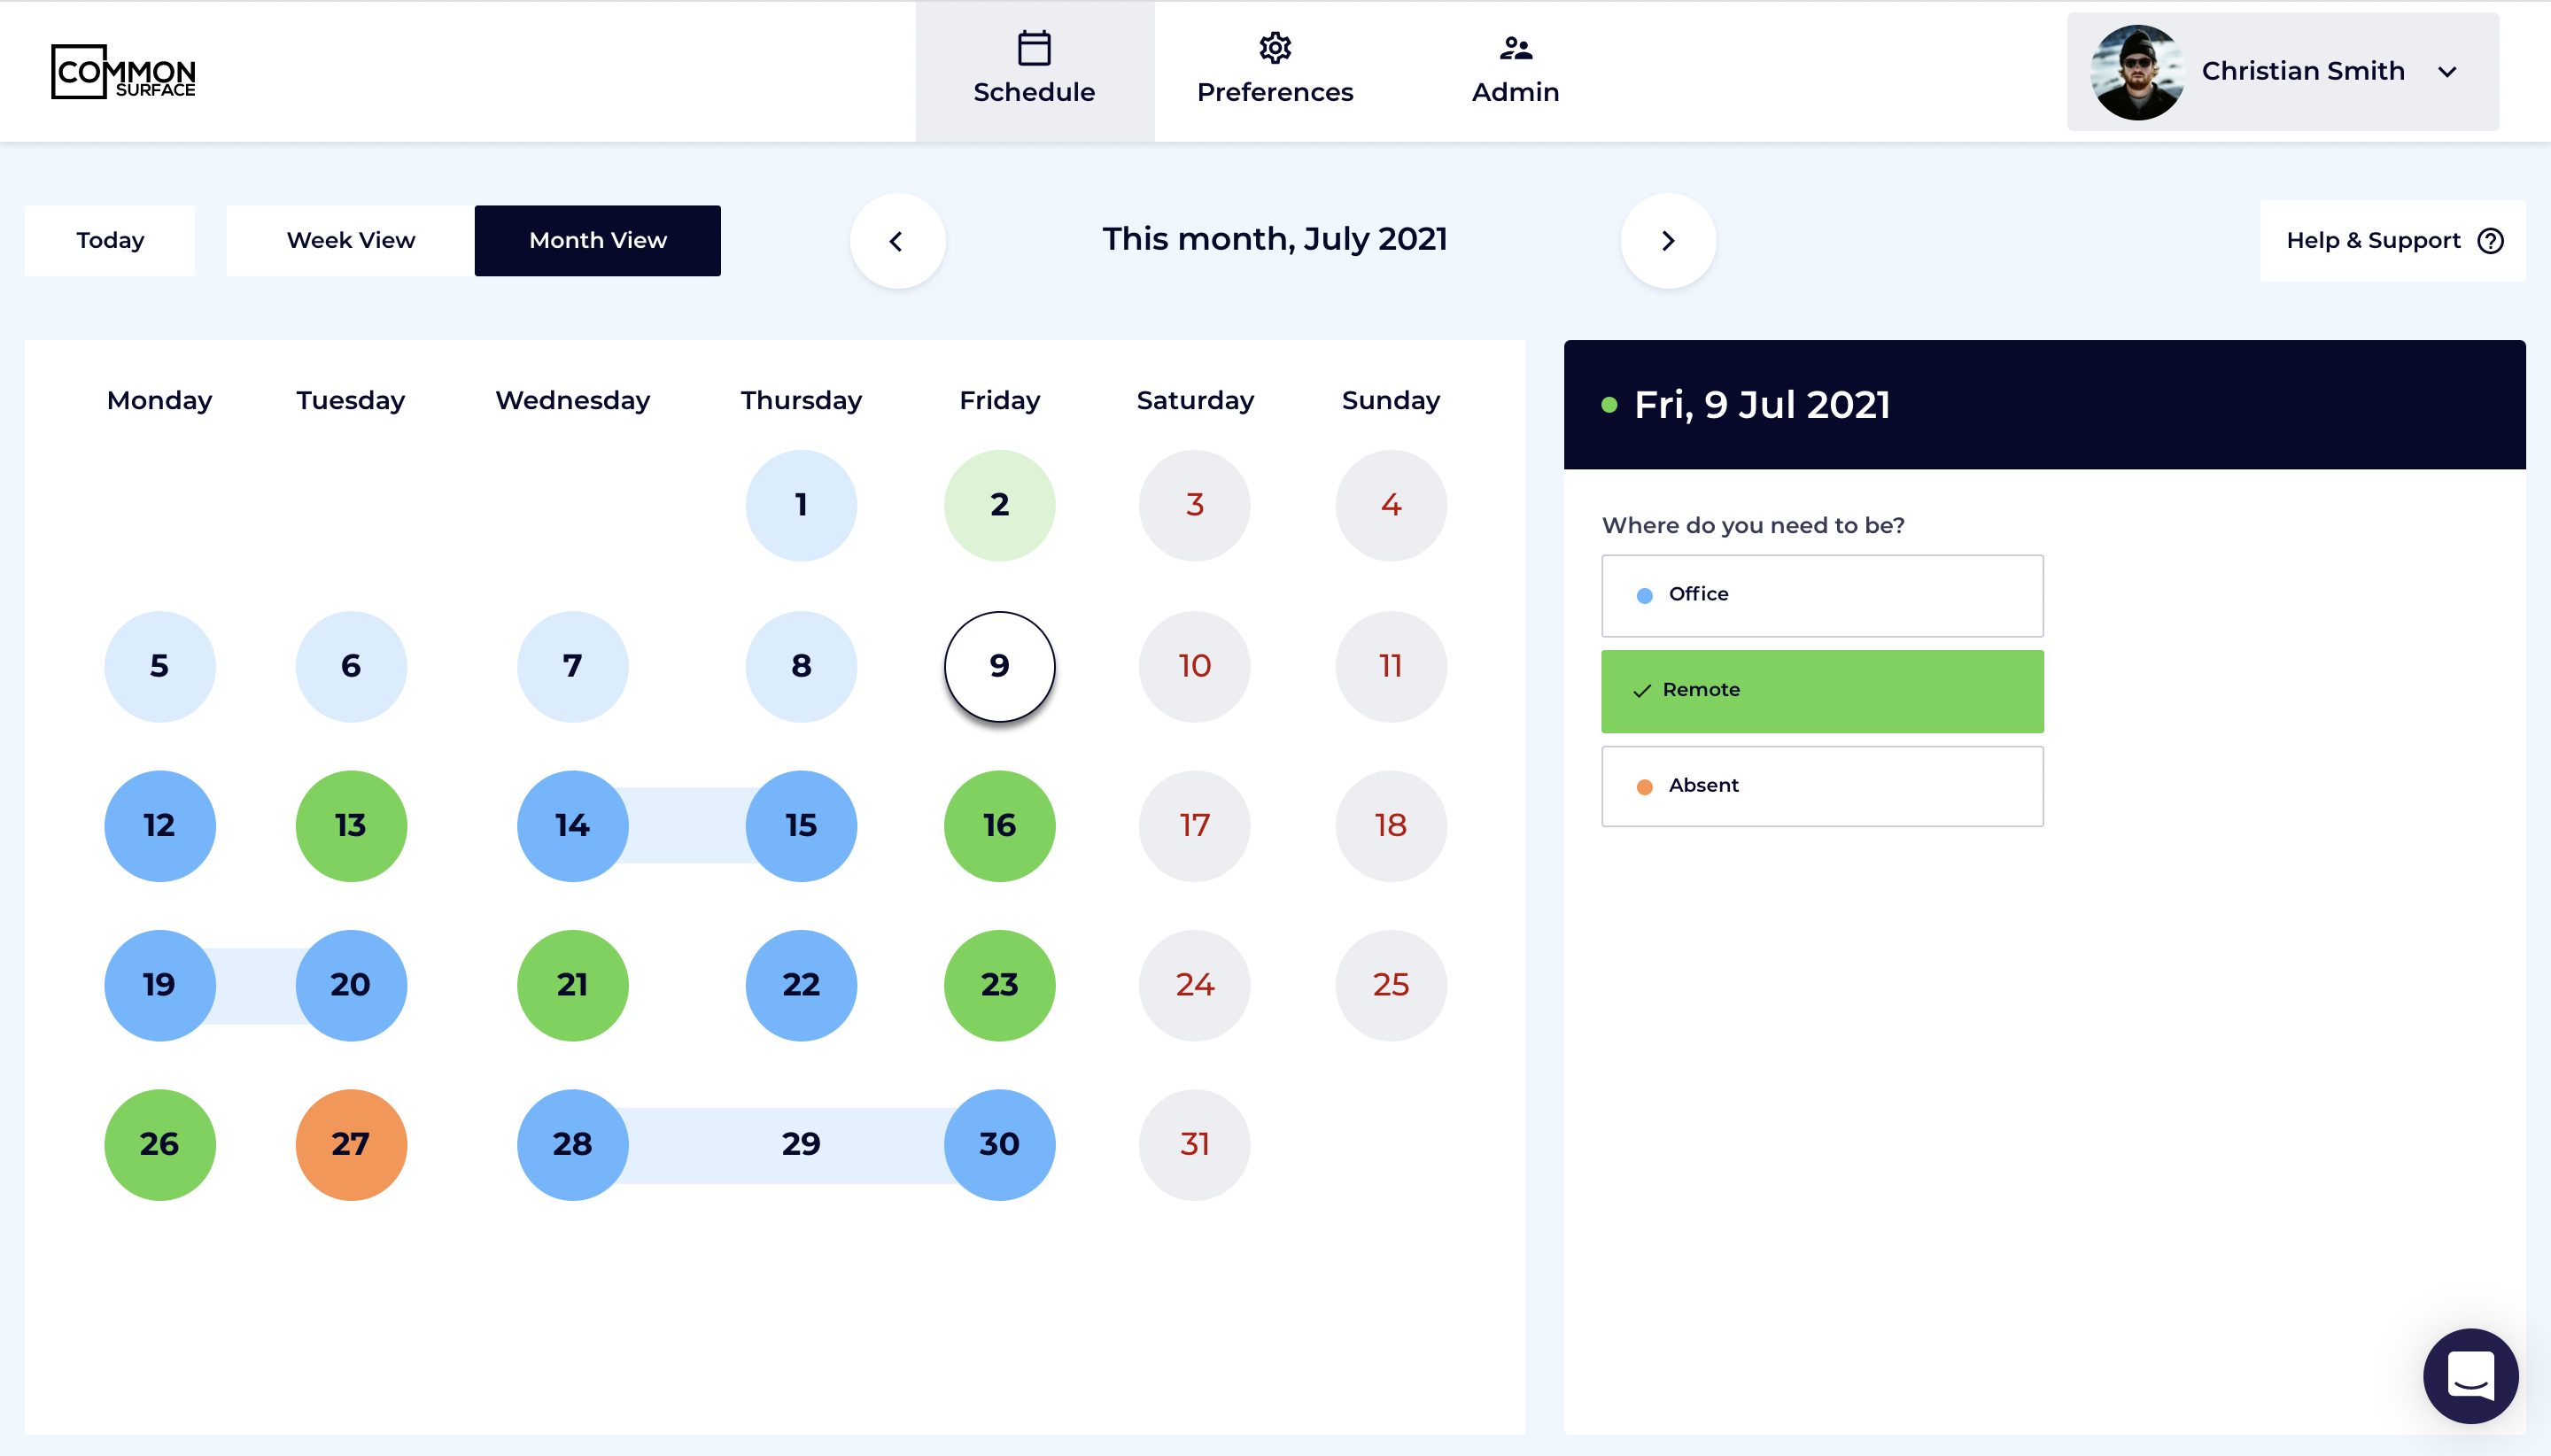 Common Surface also provides a monthly view of the schedule, where users can book days in advance, and absences and holidays are synced across from HR systems.